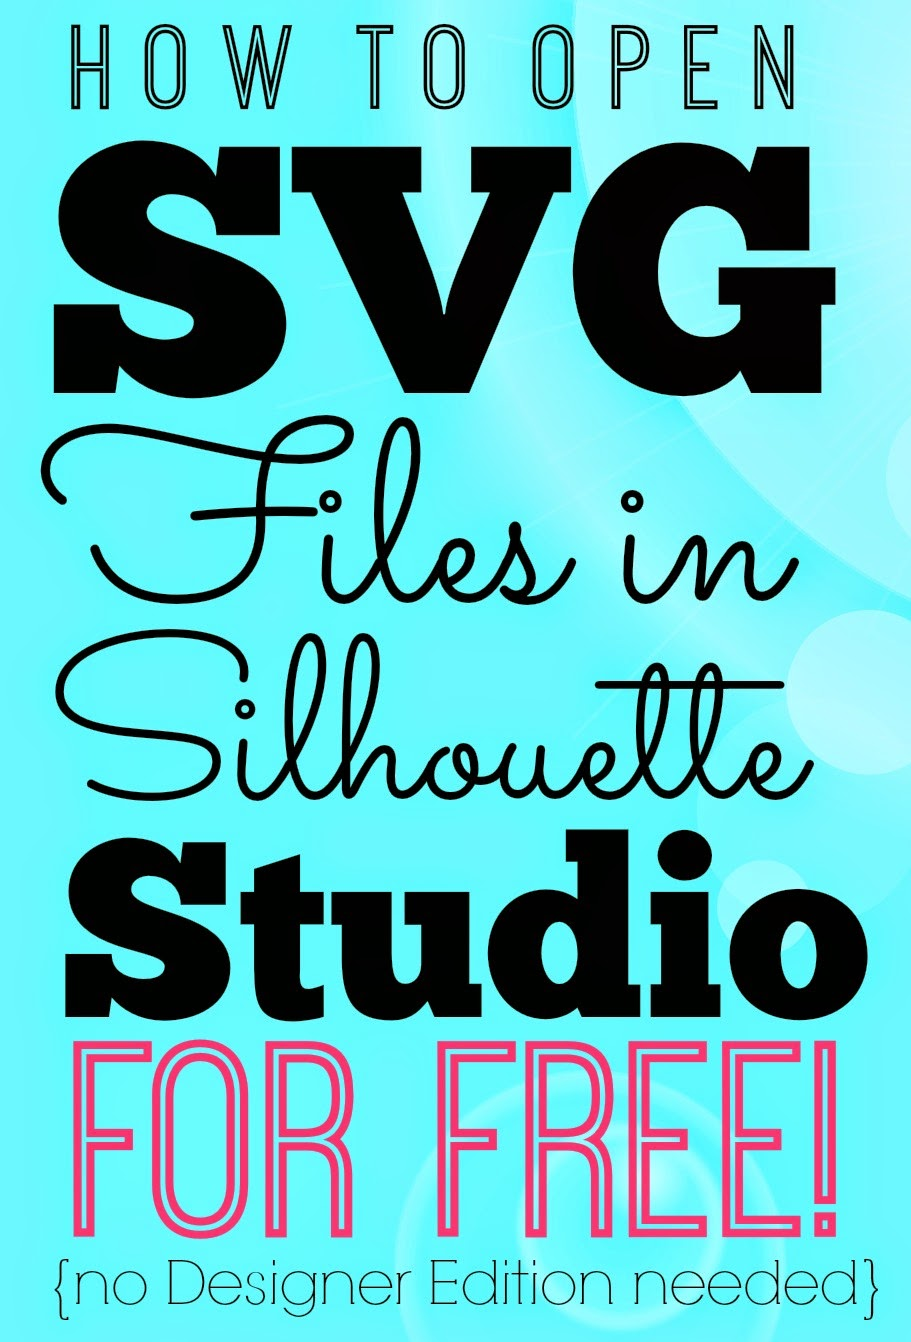 Estudio svg #20, Download drawings